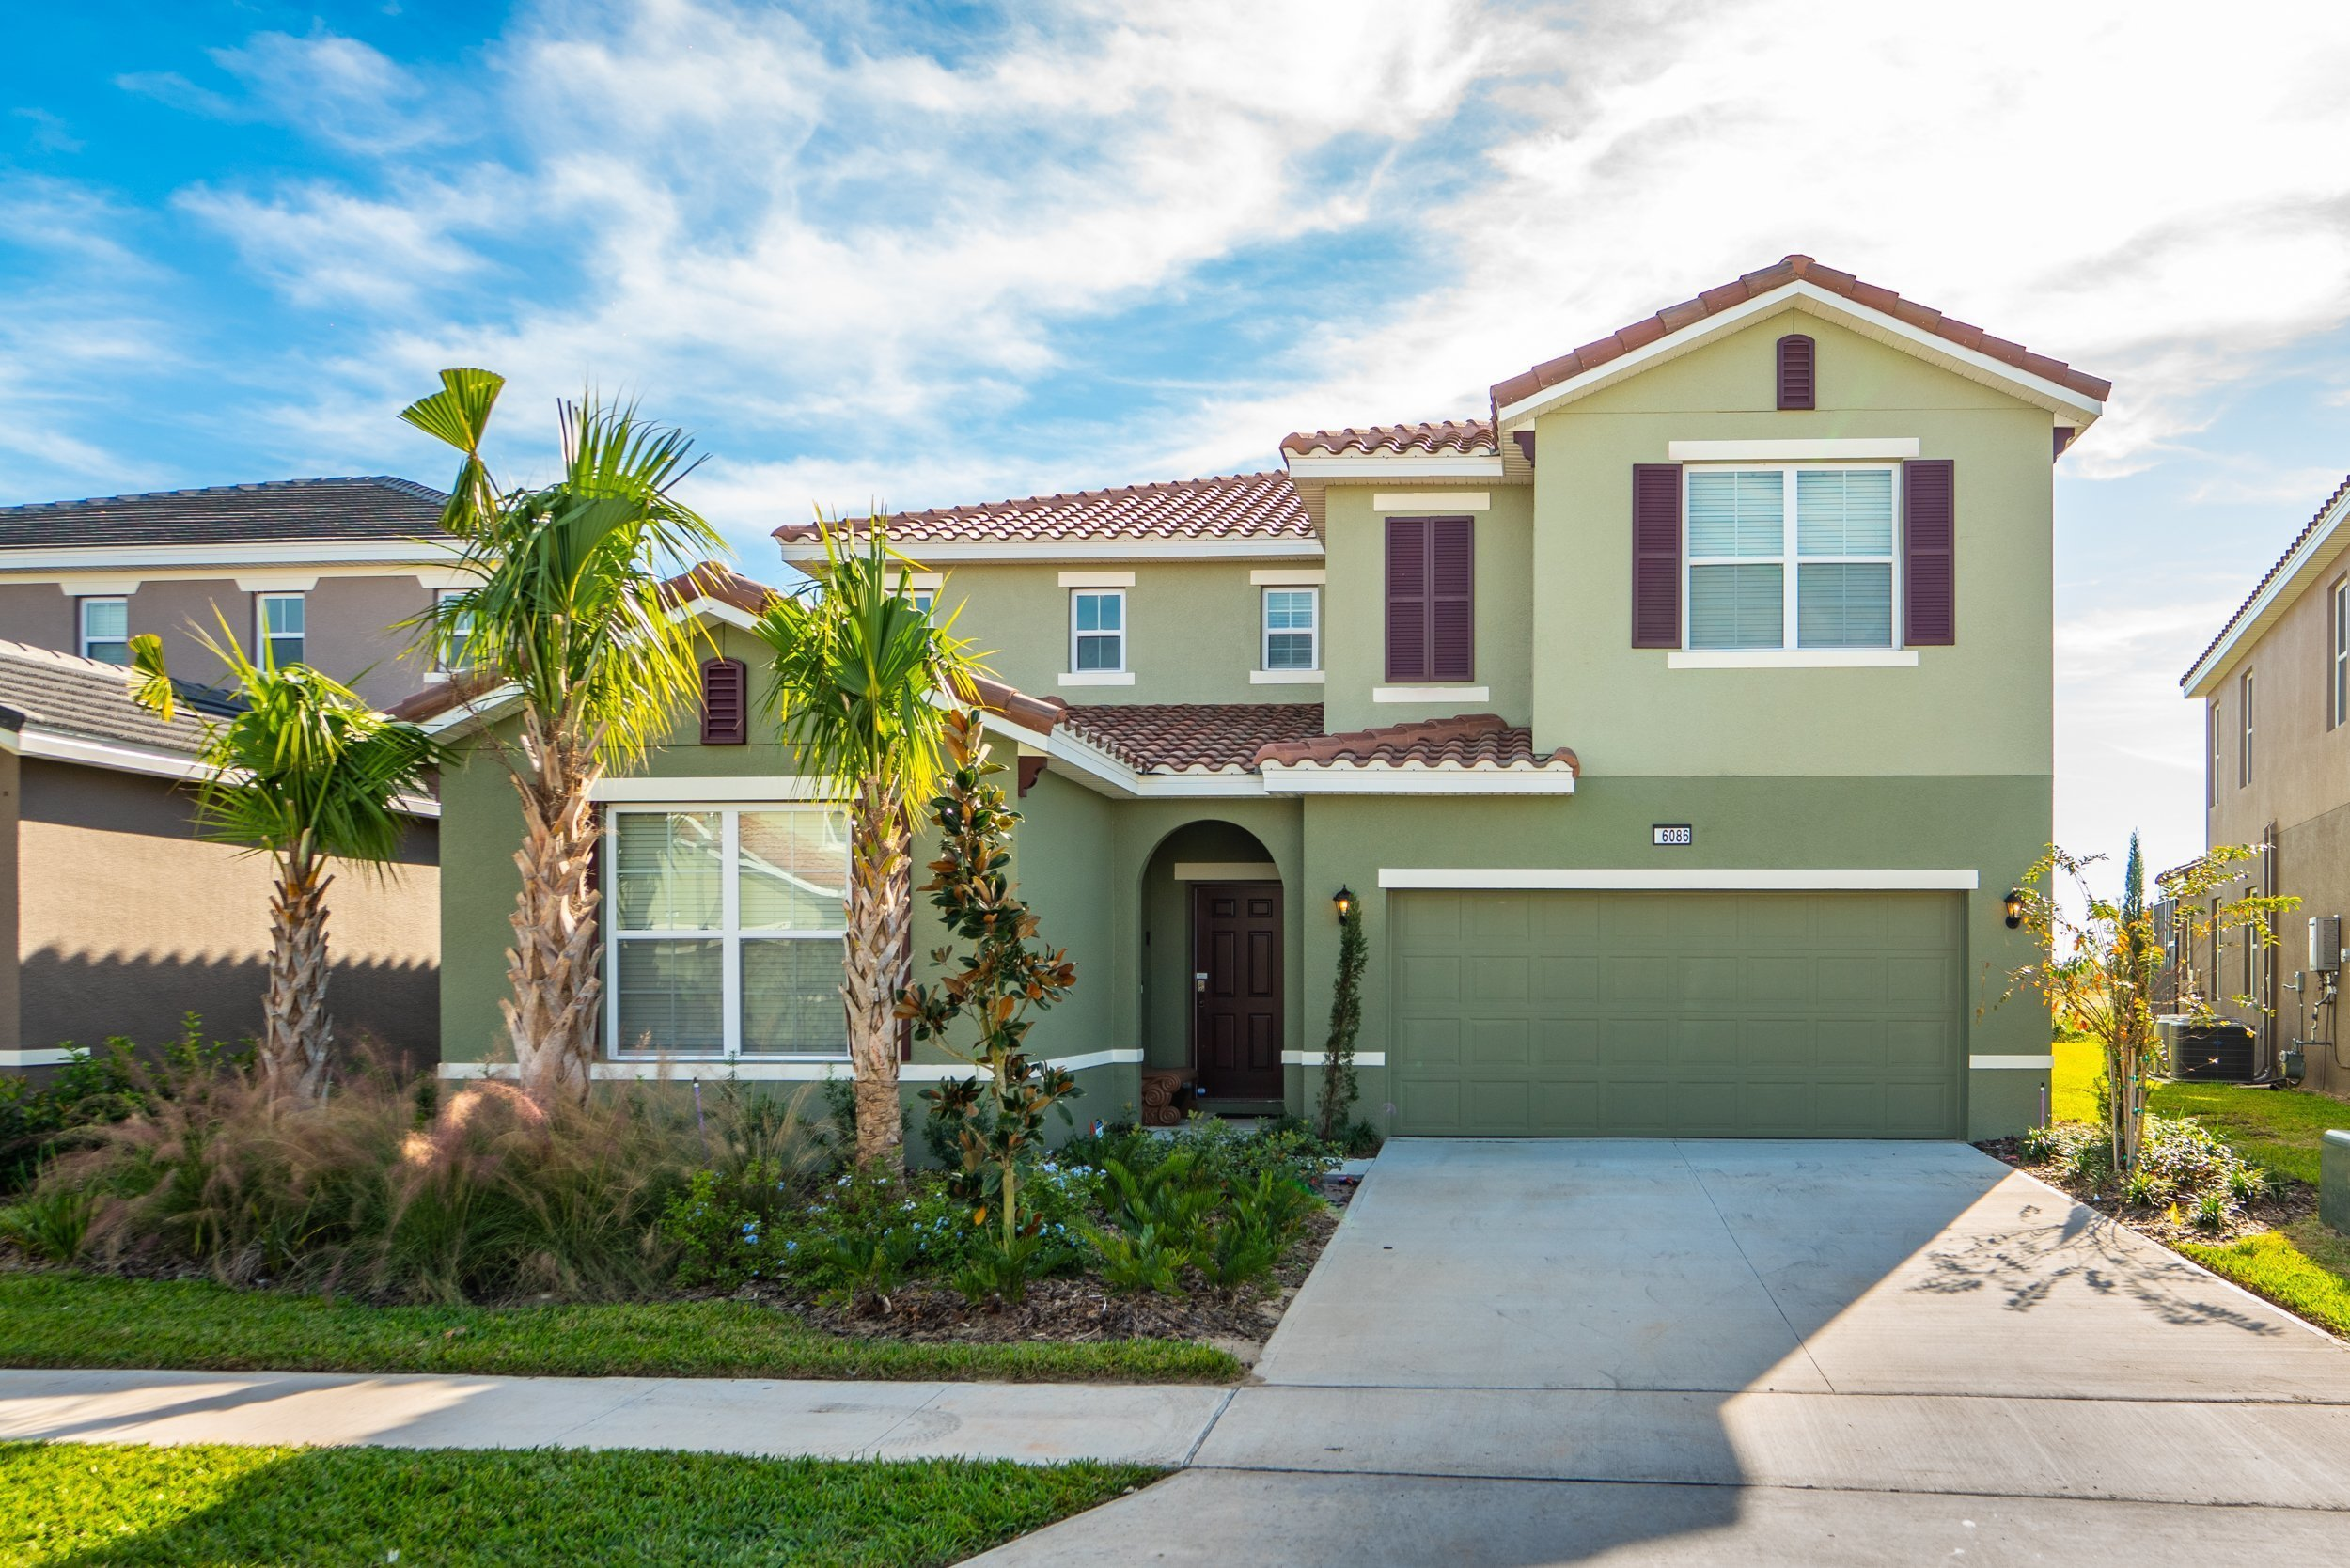 Featured Property: 6086BOD- The Palisades in Solterra Resort